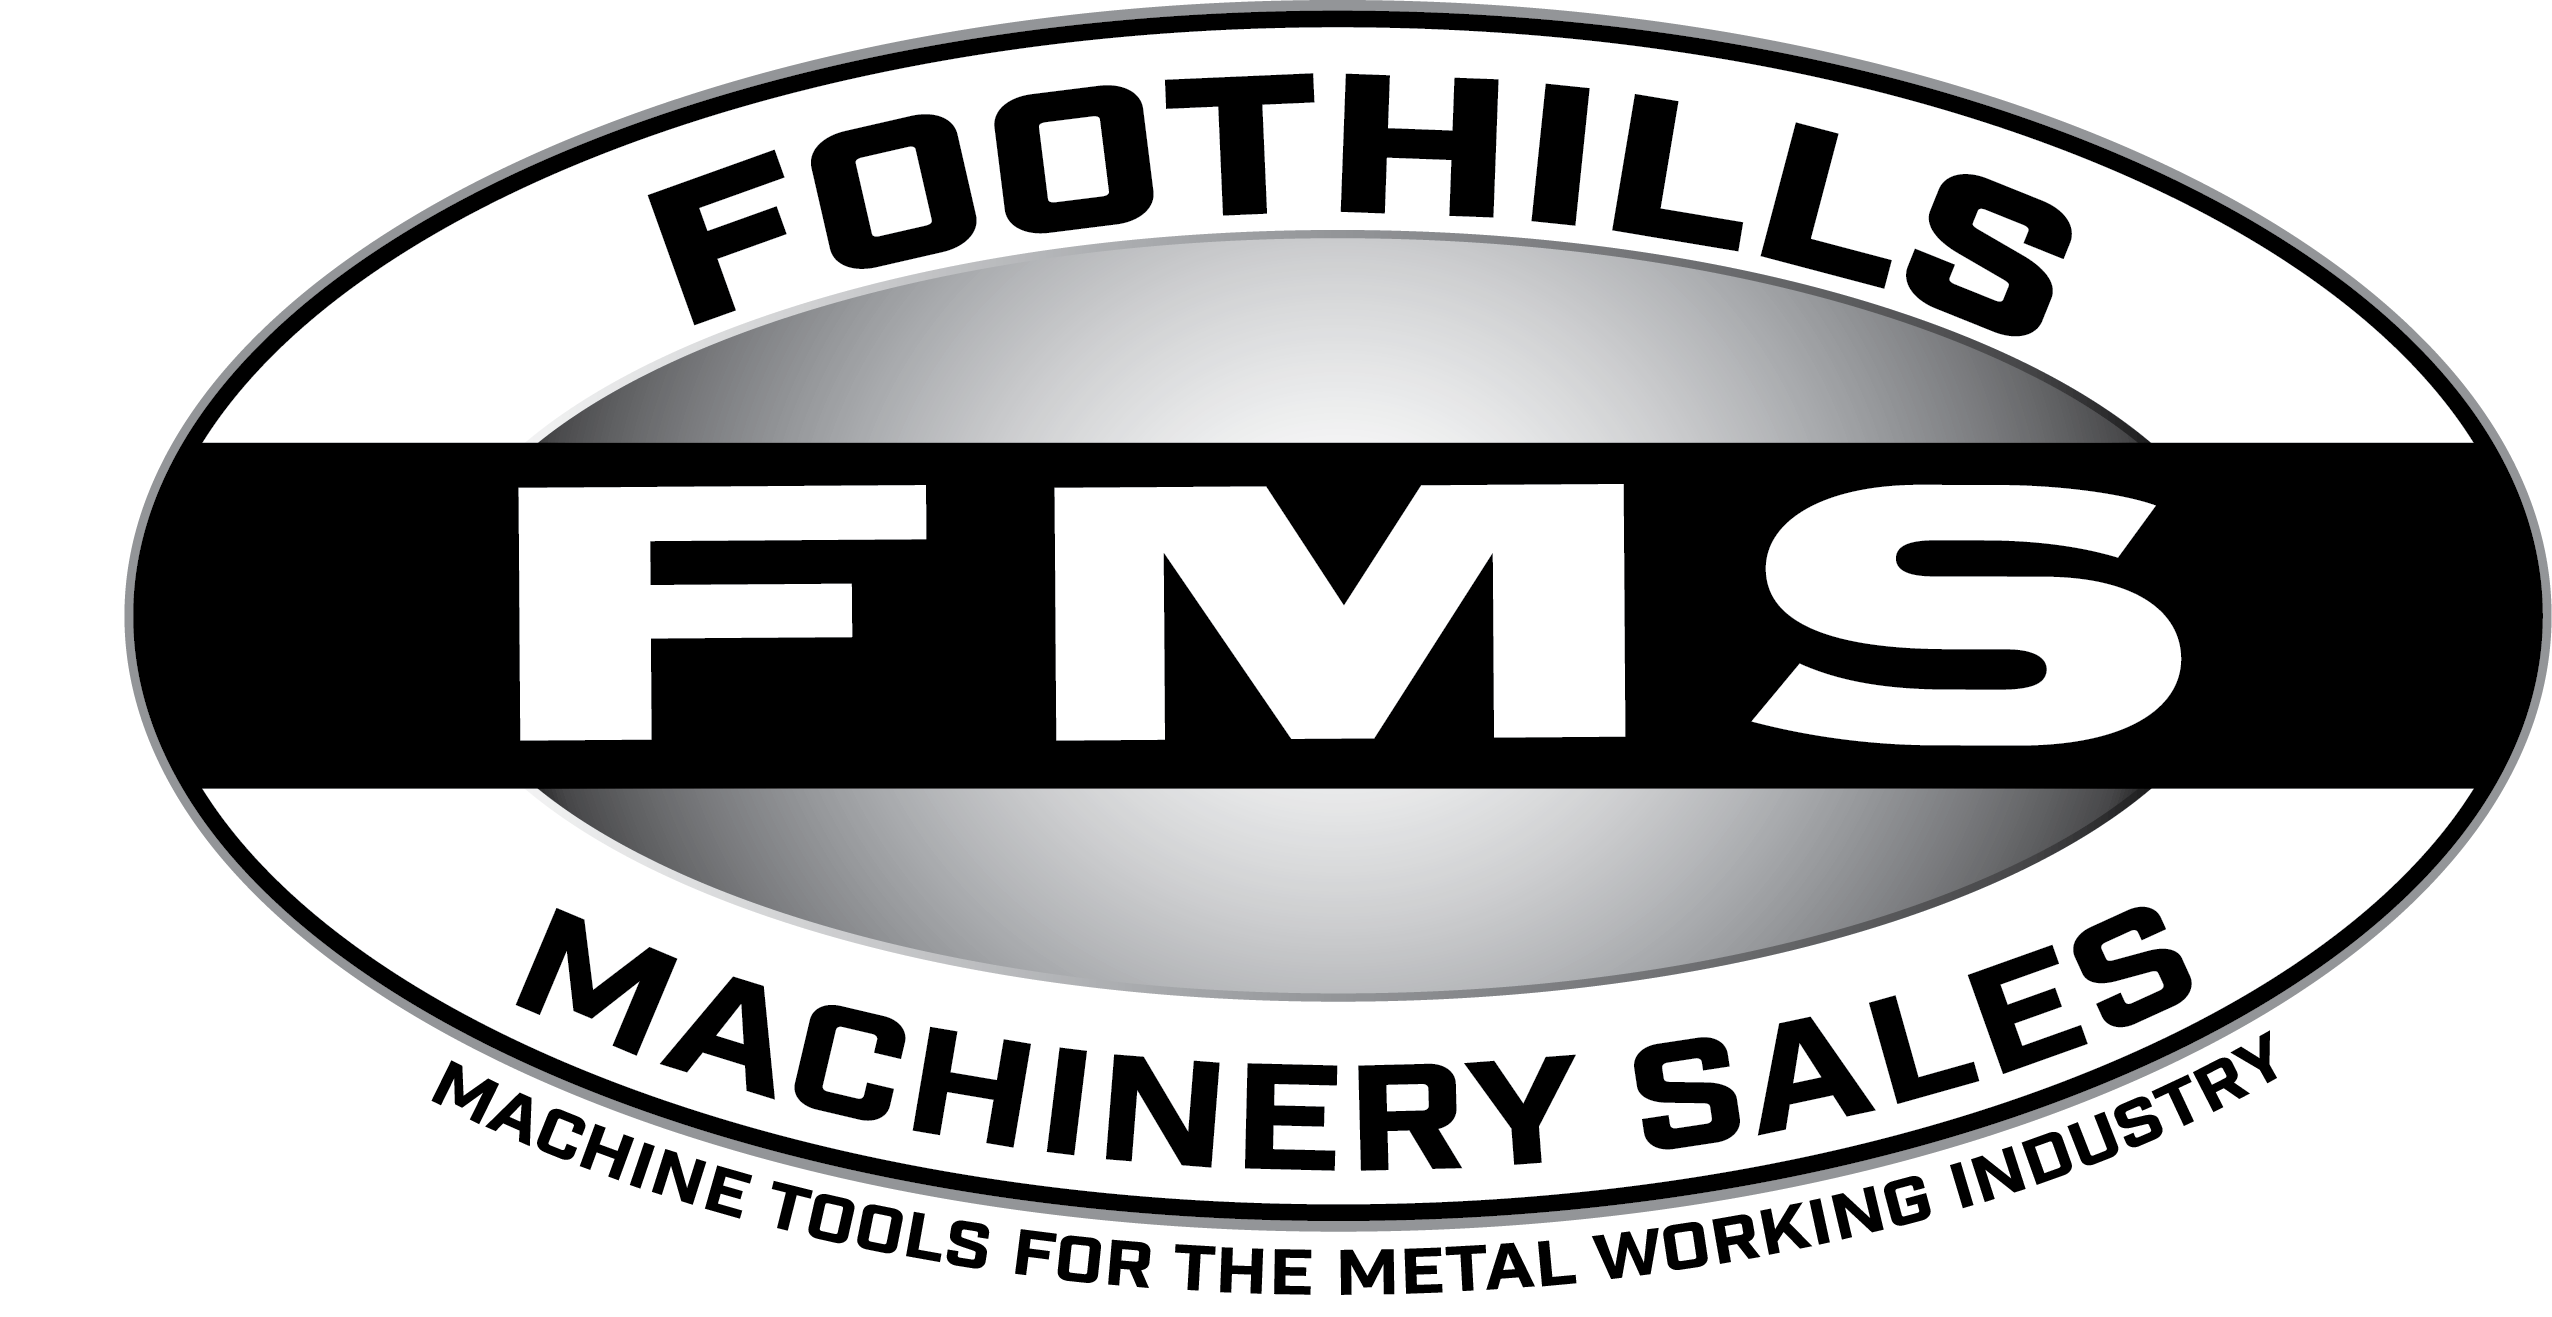 FOOTHILLS MACHINERY SALES